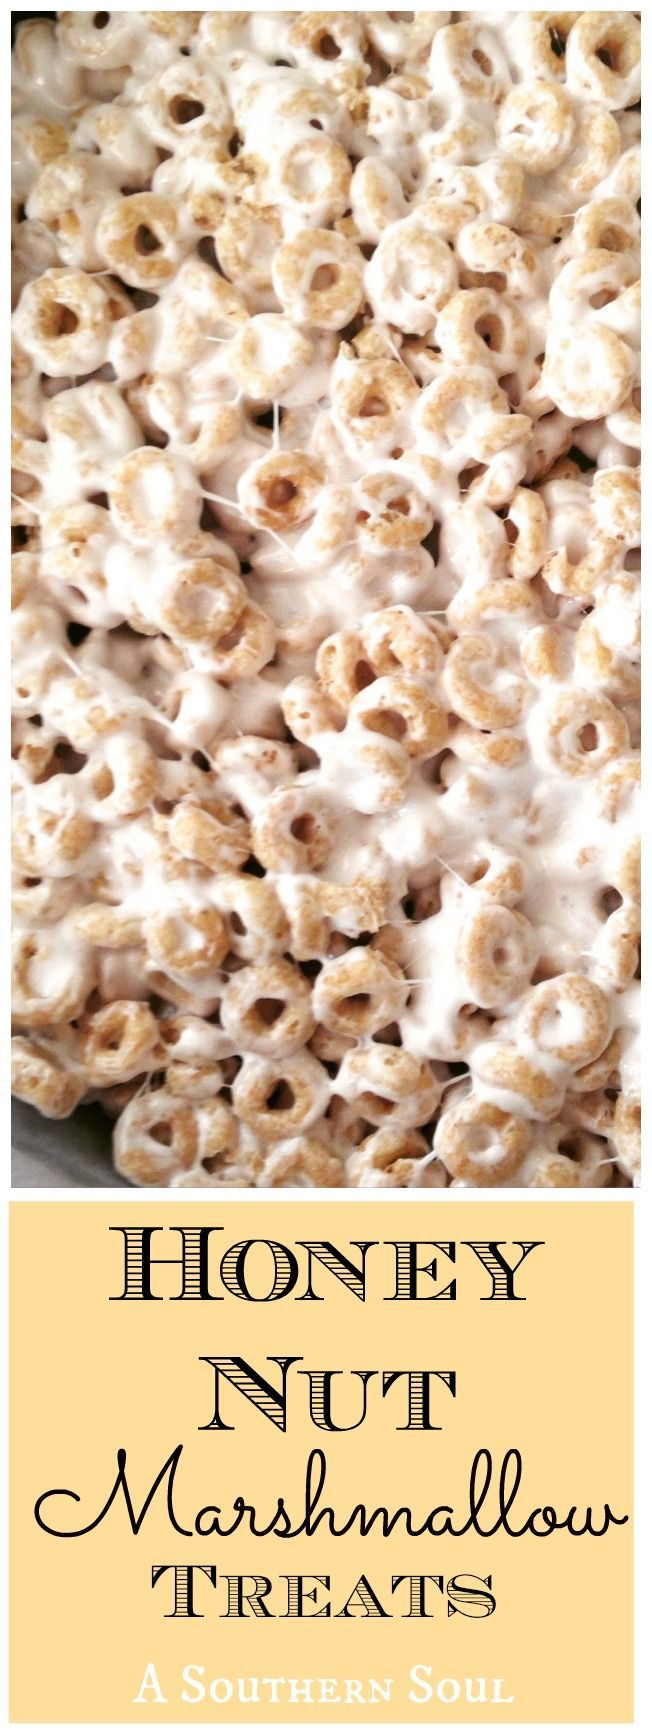 Honey Nut cereal with sweet marshmallow make a yummy treat everyone will love!